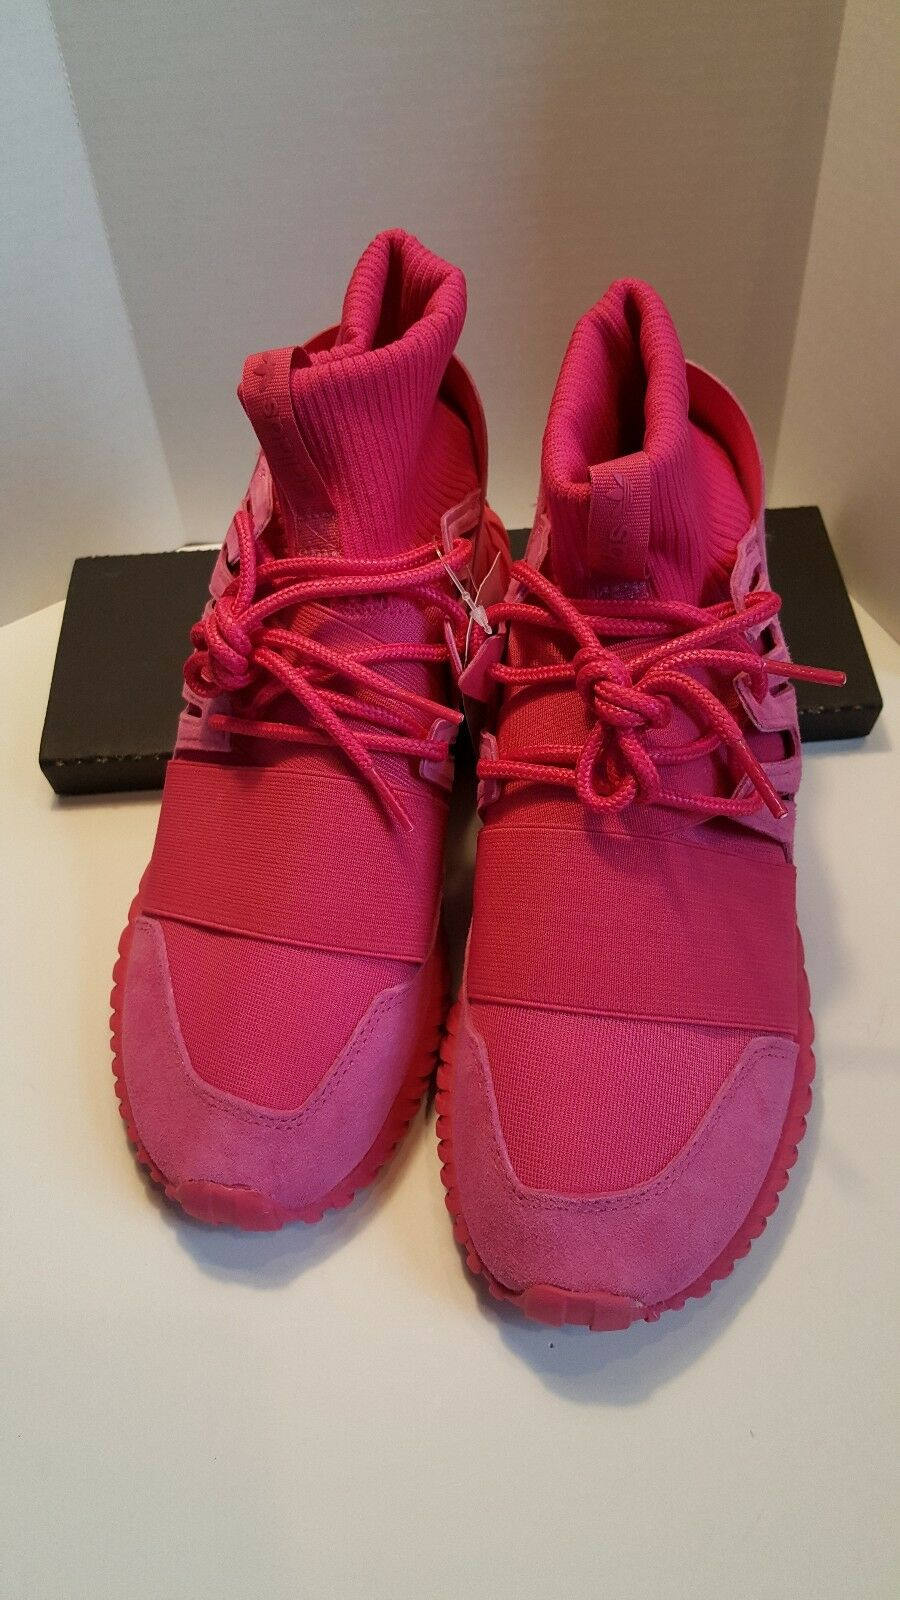 NEW ADIDAS ORIGINALS TUBULAR DOOM size 10 MENS ATHLETIC SHOES SNEAKERS S74795 Wild casual shoes